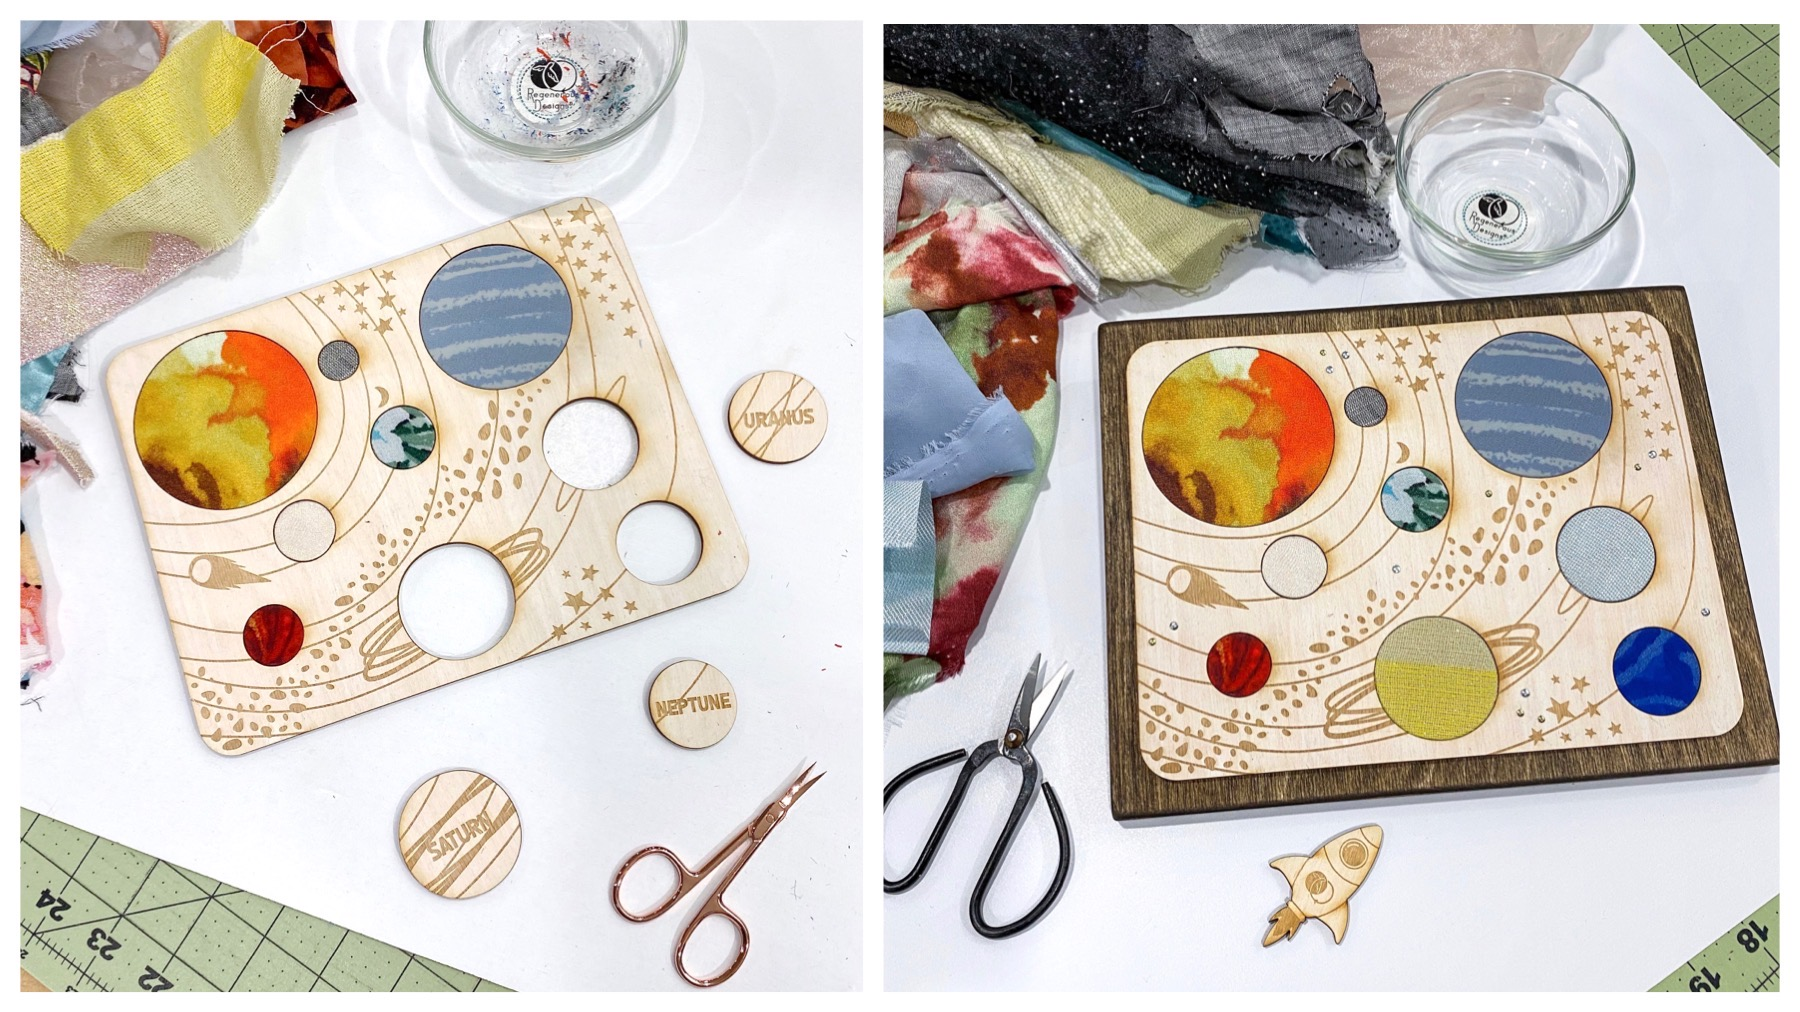 DIY educational art kit craft project for kids - textile and wood solar system space galaxy planets astronaut